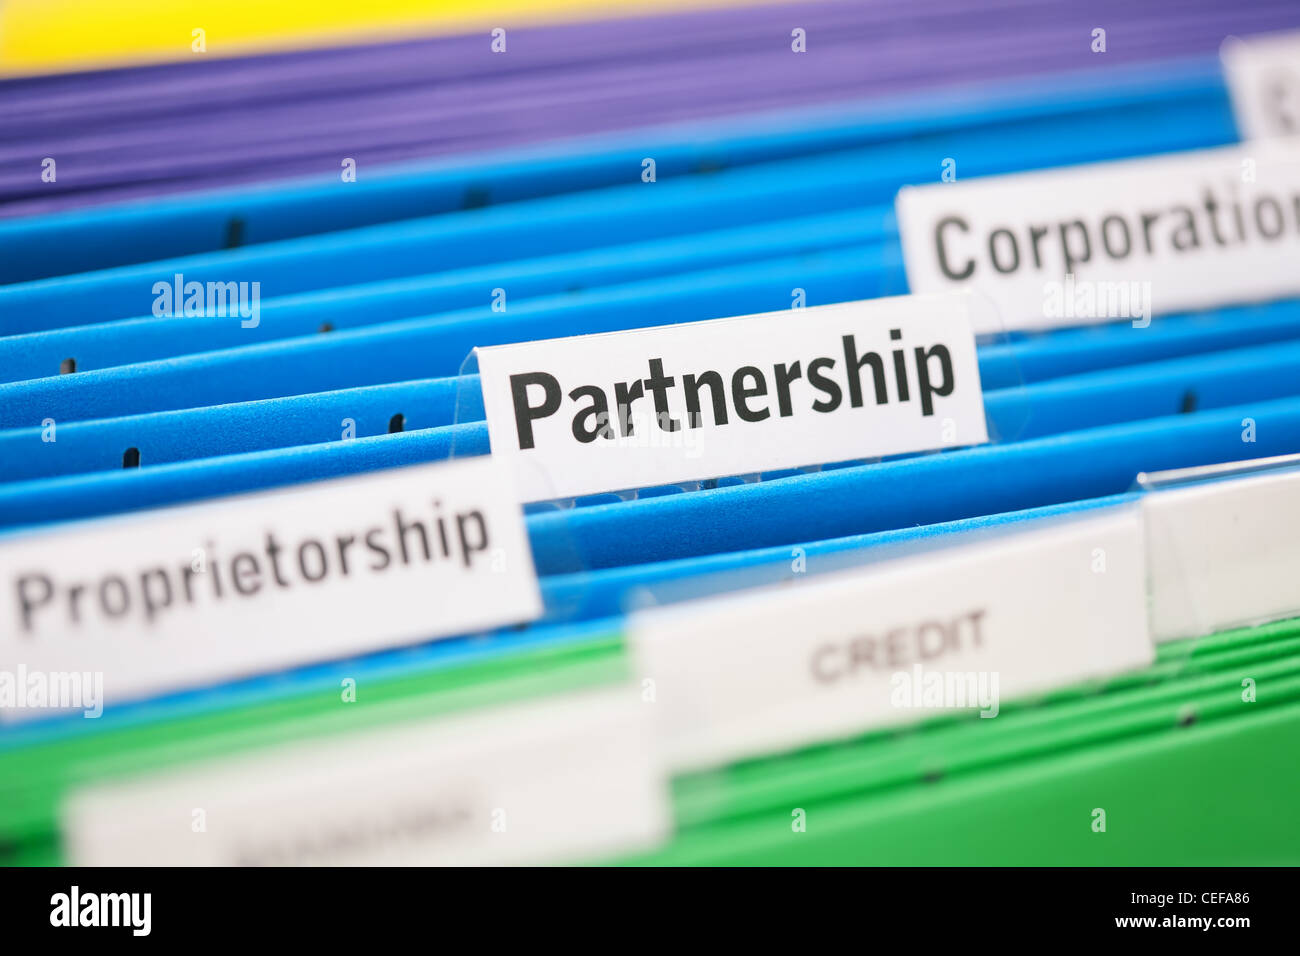 Partnership business entity filed in a blue folder - Stock Image